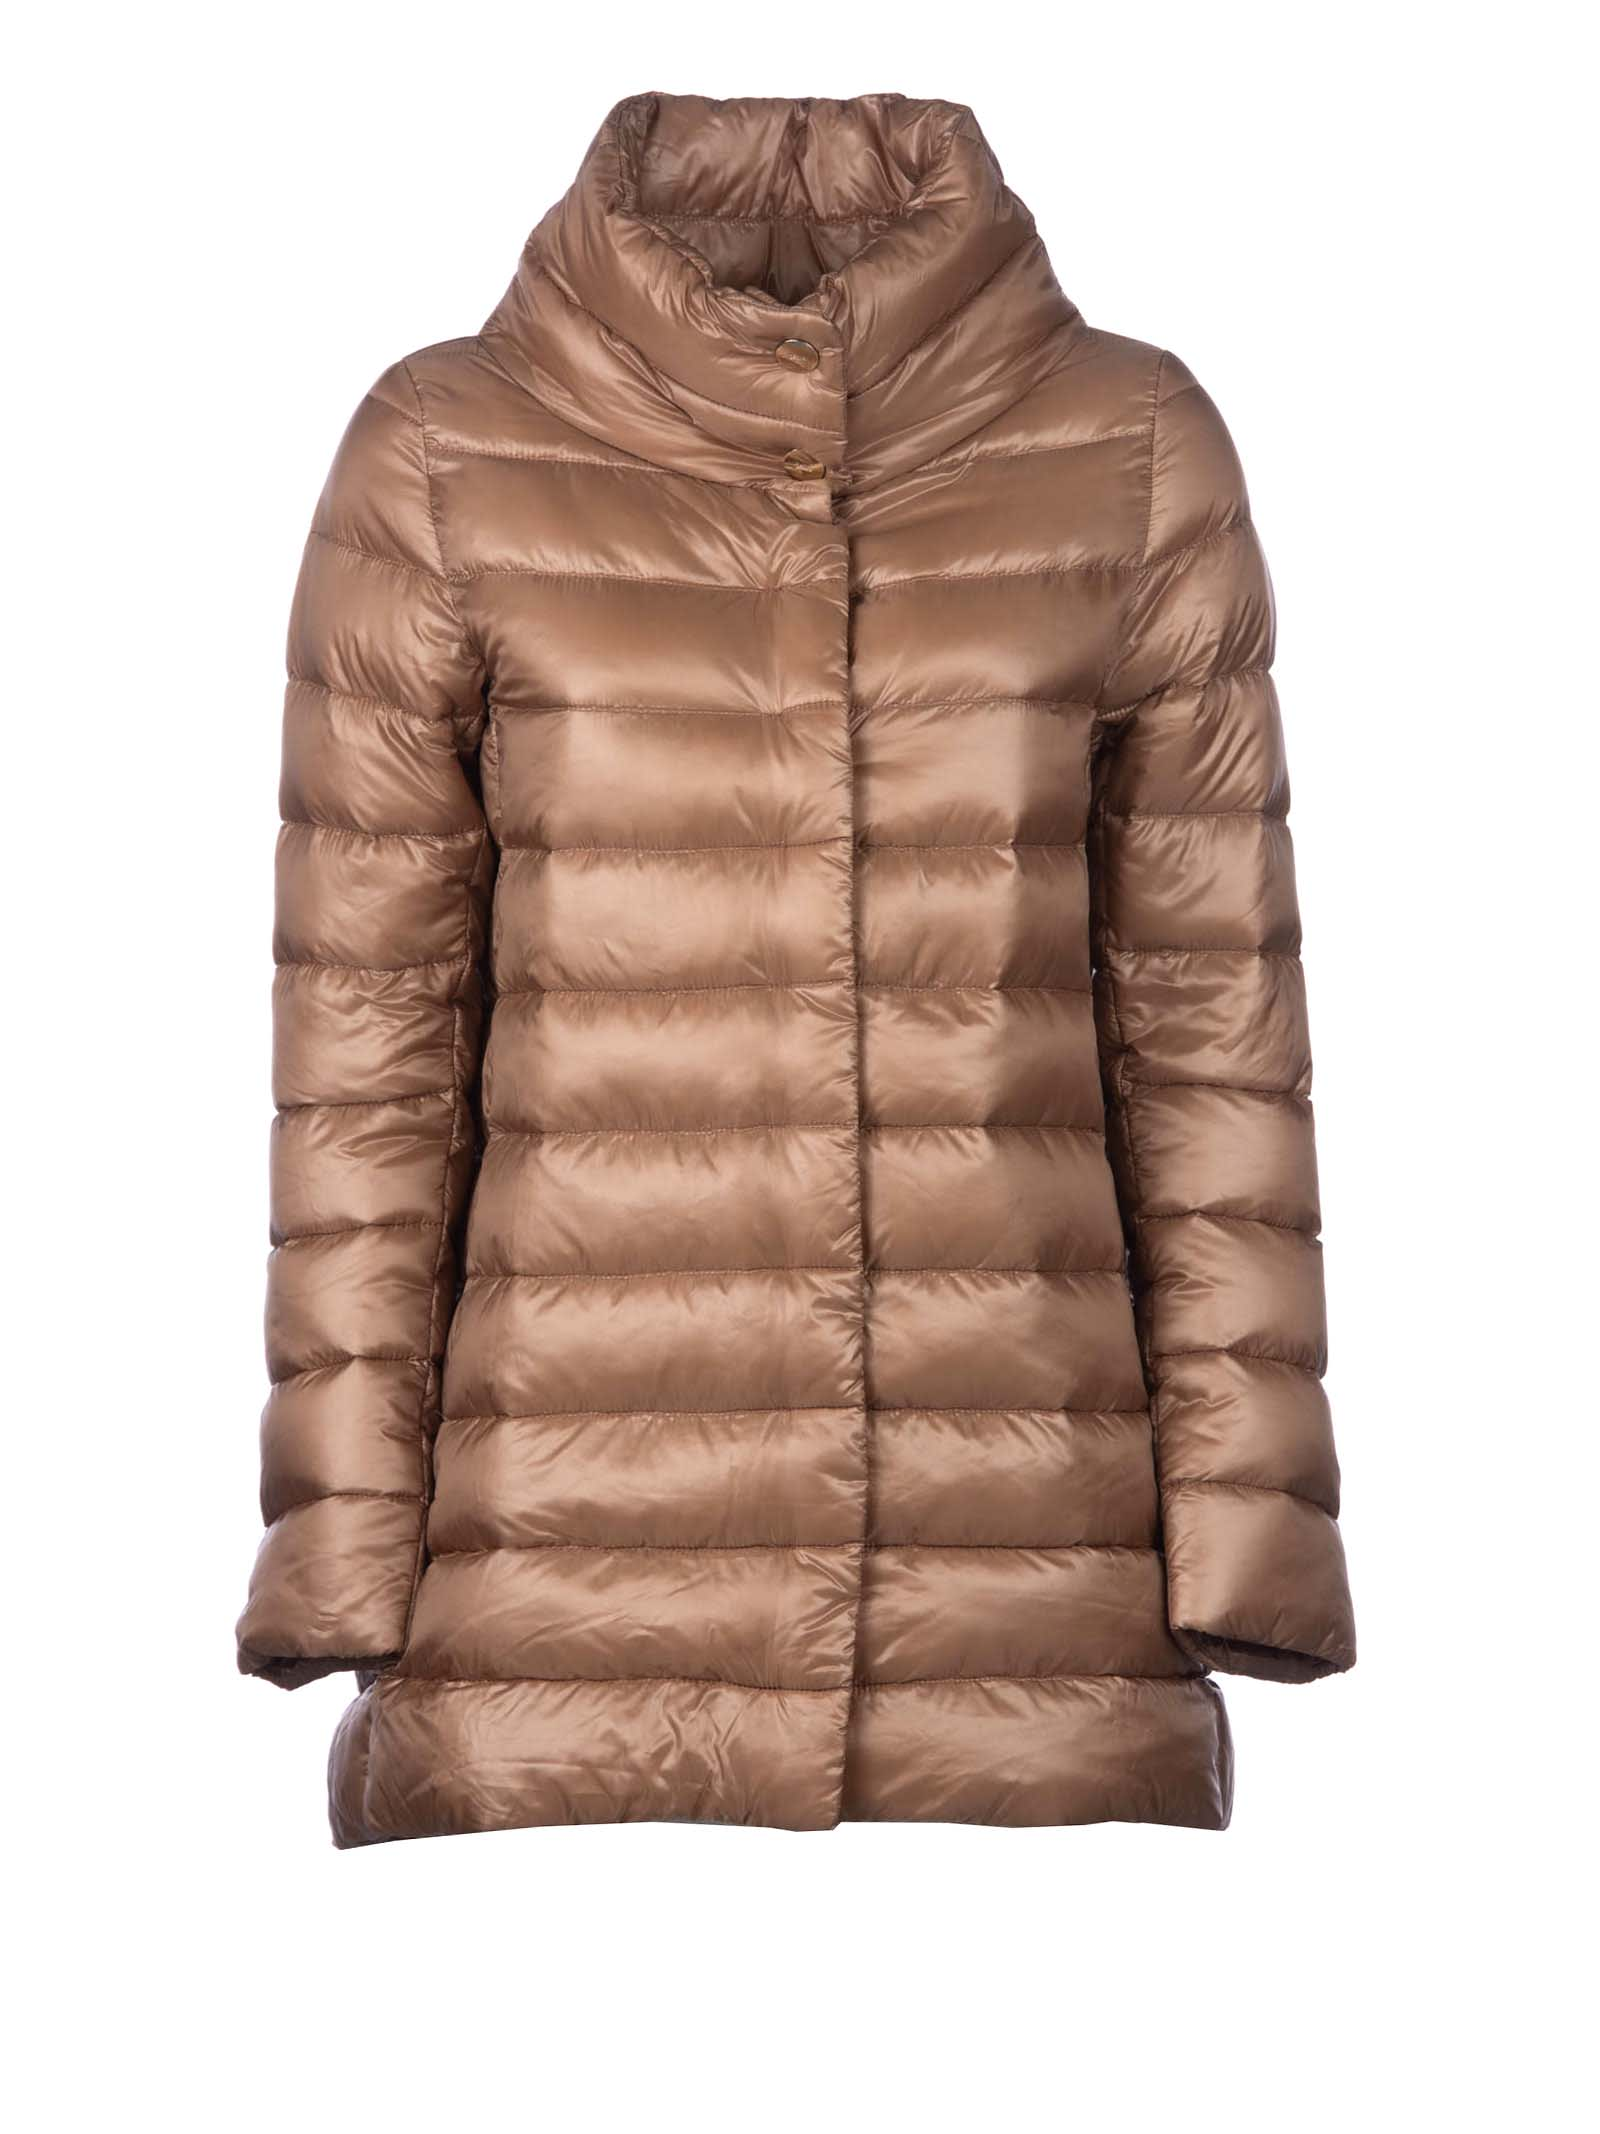 Photo of  Herno Herno Amelia Padded- shop Herno jackets online sales